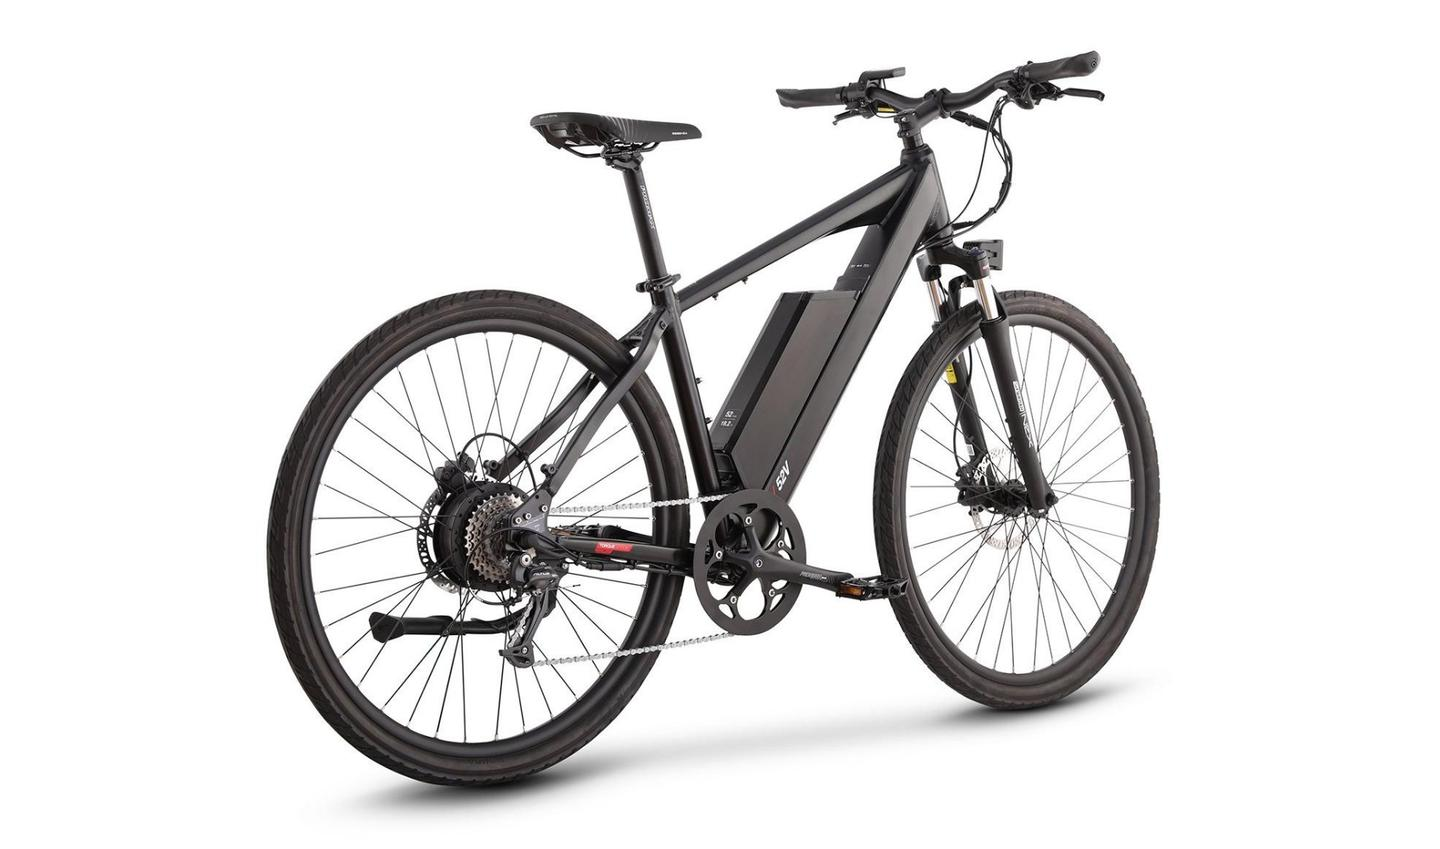 The Juiced CrossCurrent S2 gets 50-100-mile ranges with pedal assist